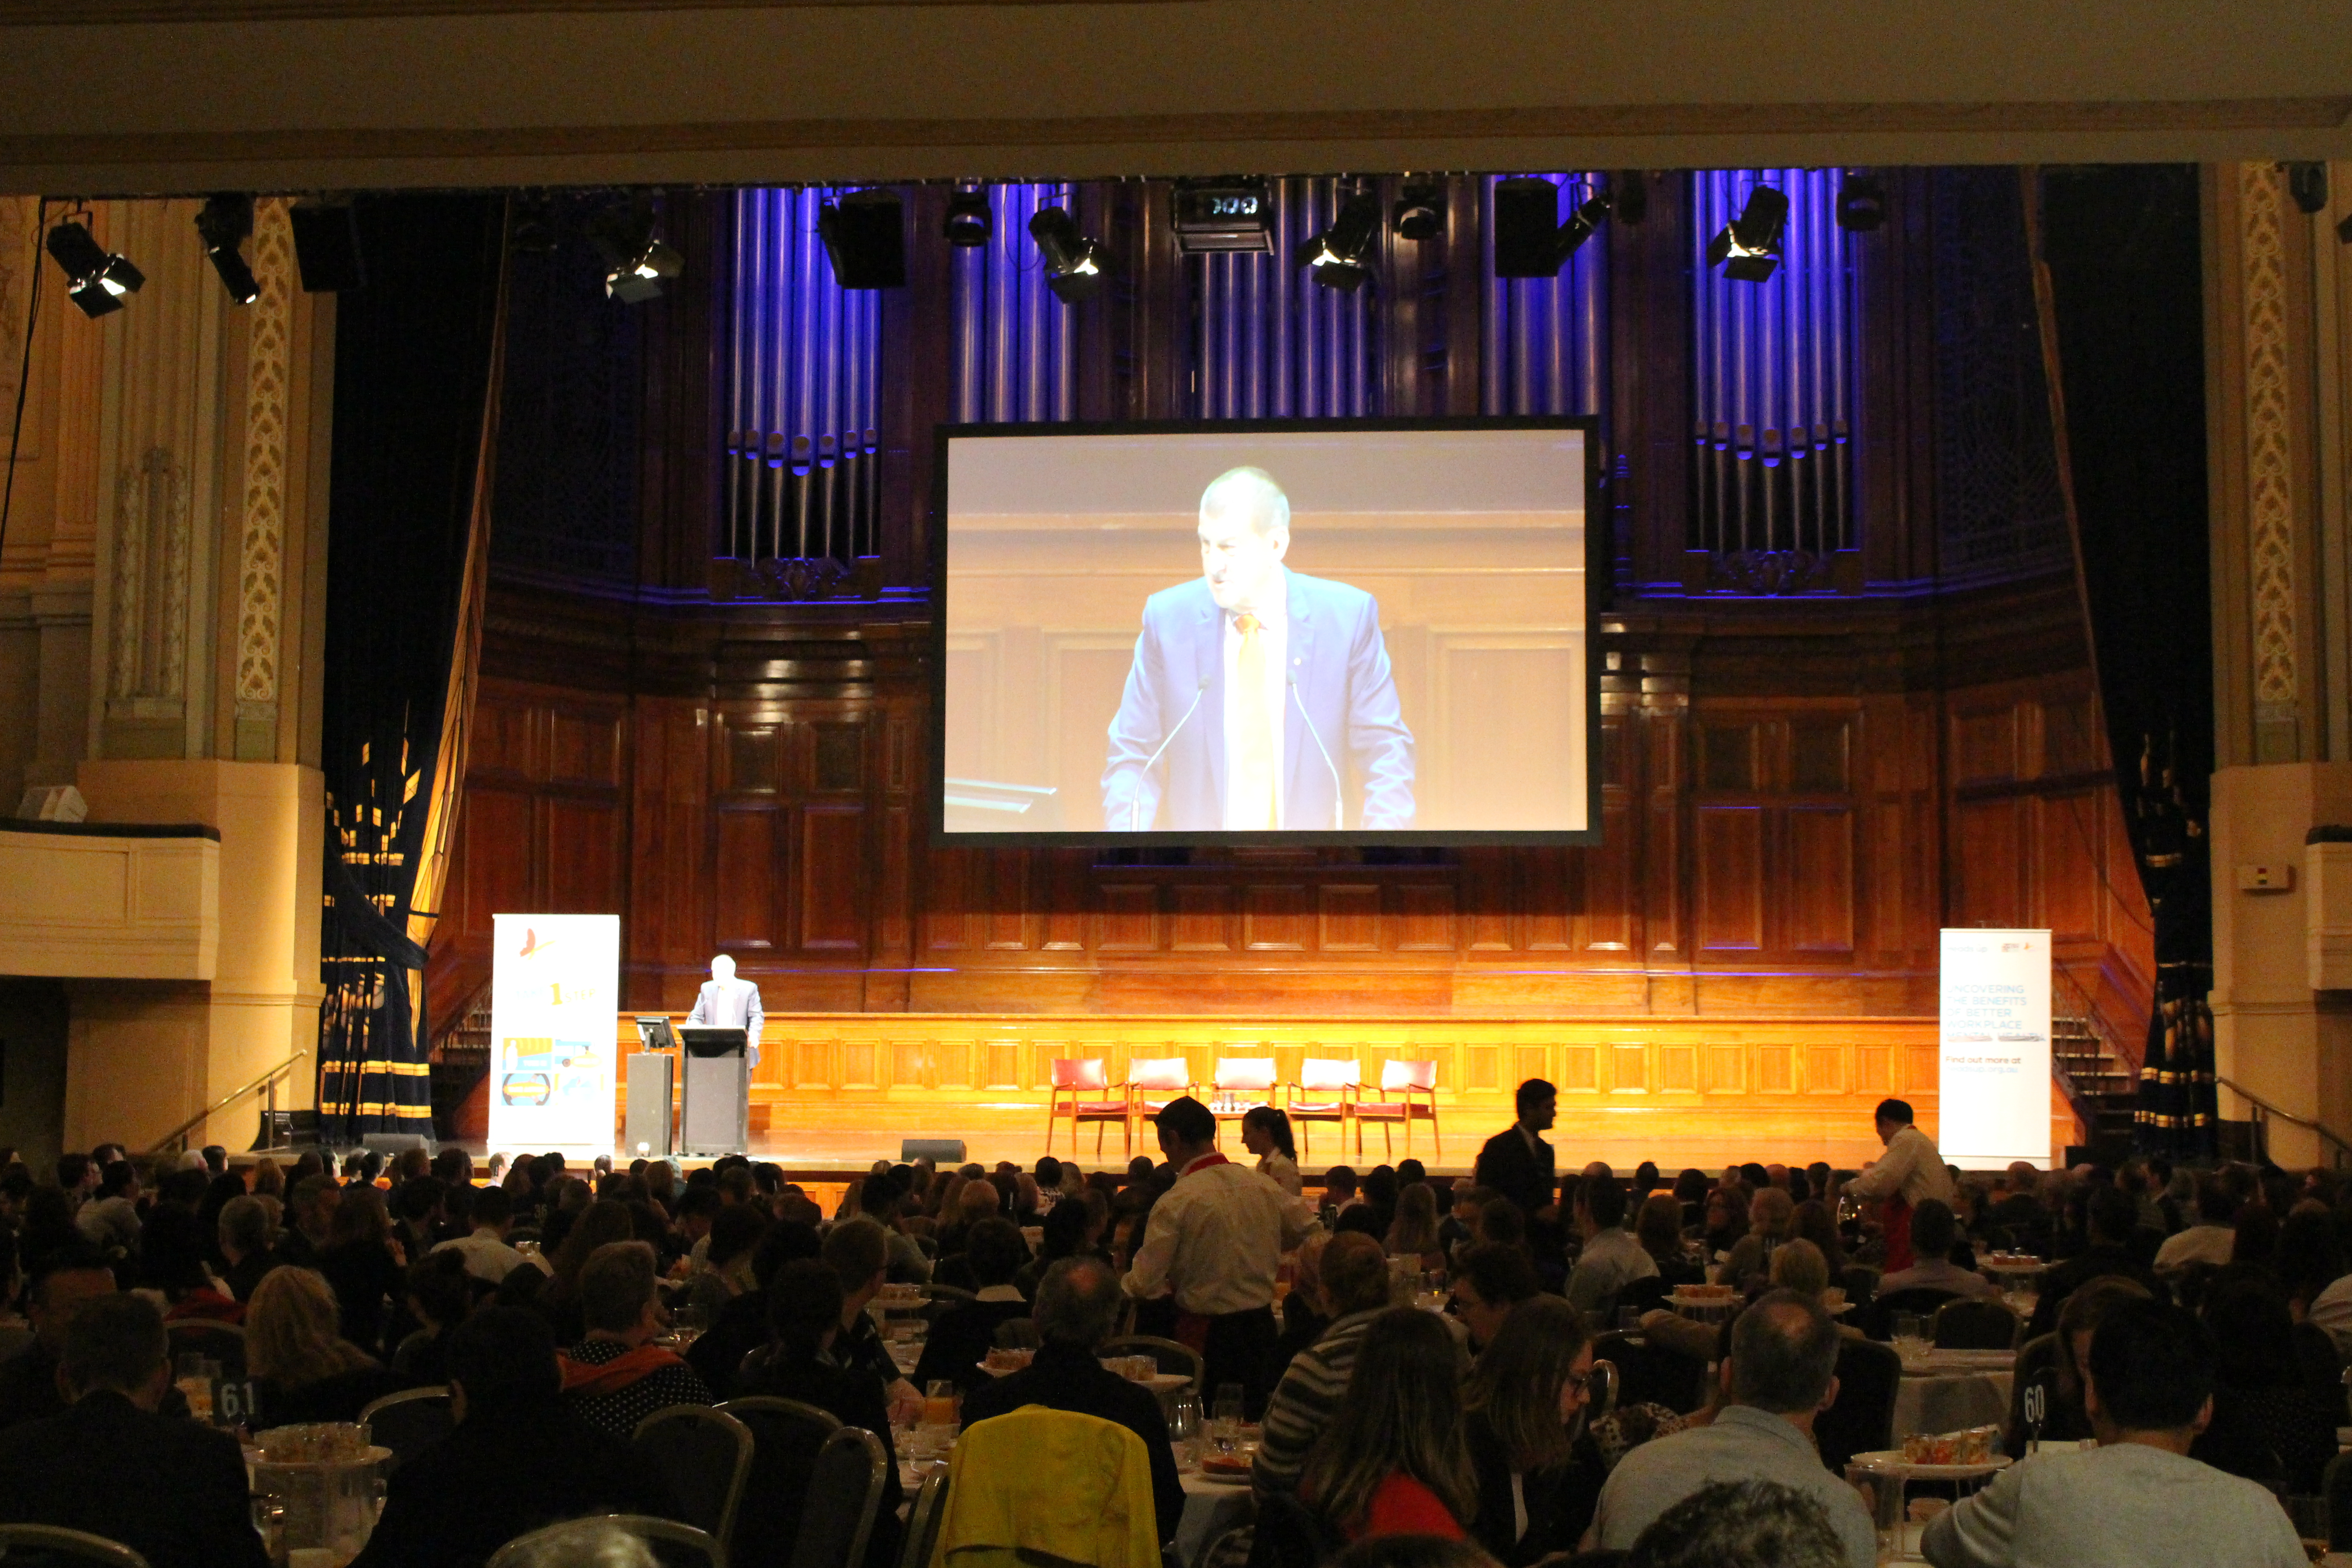 Beyond Blue Chairman Jeff Kennett talks about the importance of looking after mental health in the workplace at Melbourne Town Hall.